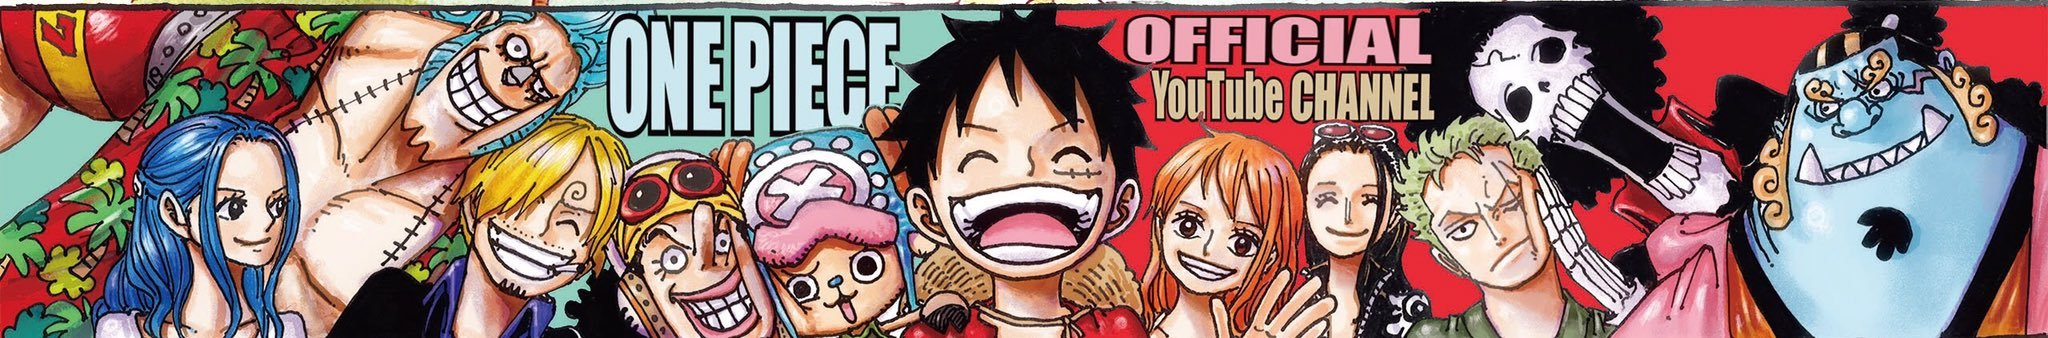 Banner from One Piece Official YouTube Channel by Claudia-Cher